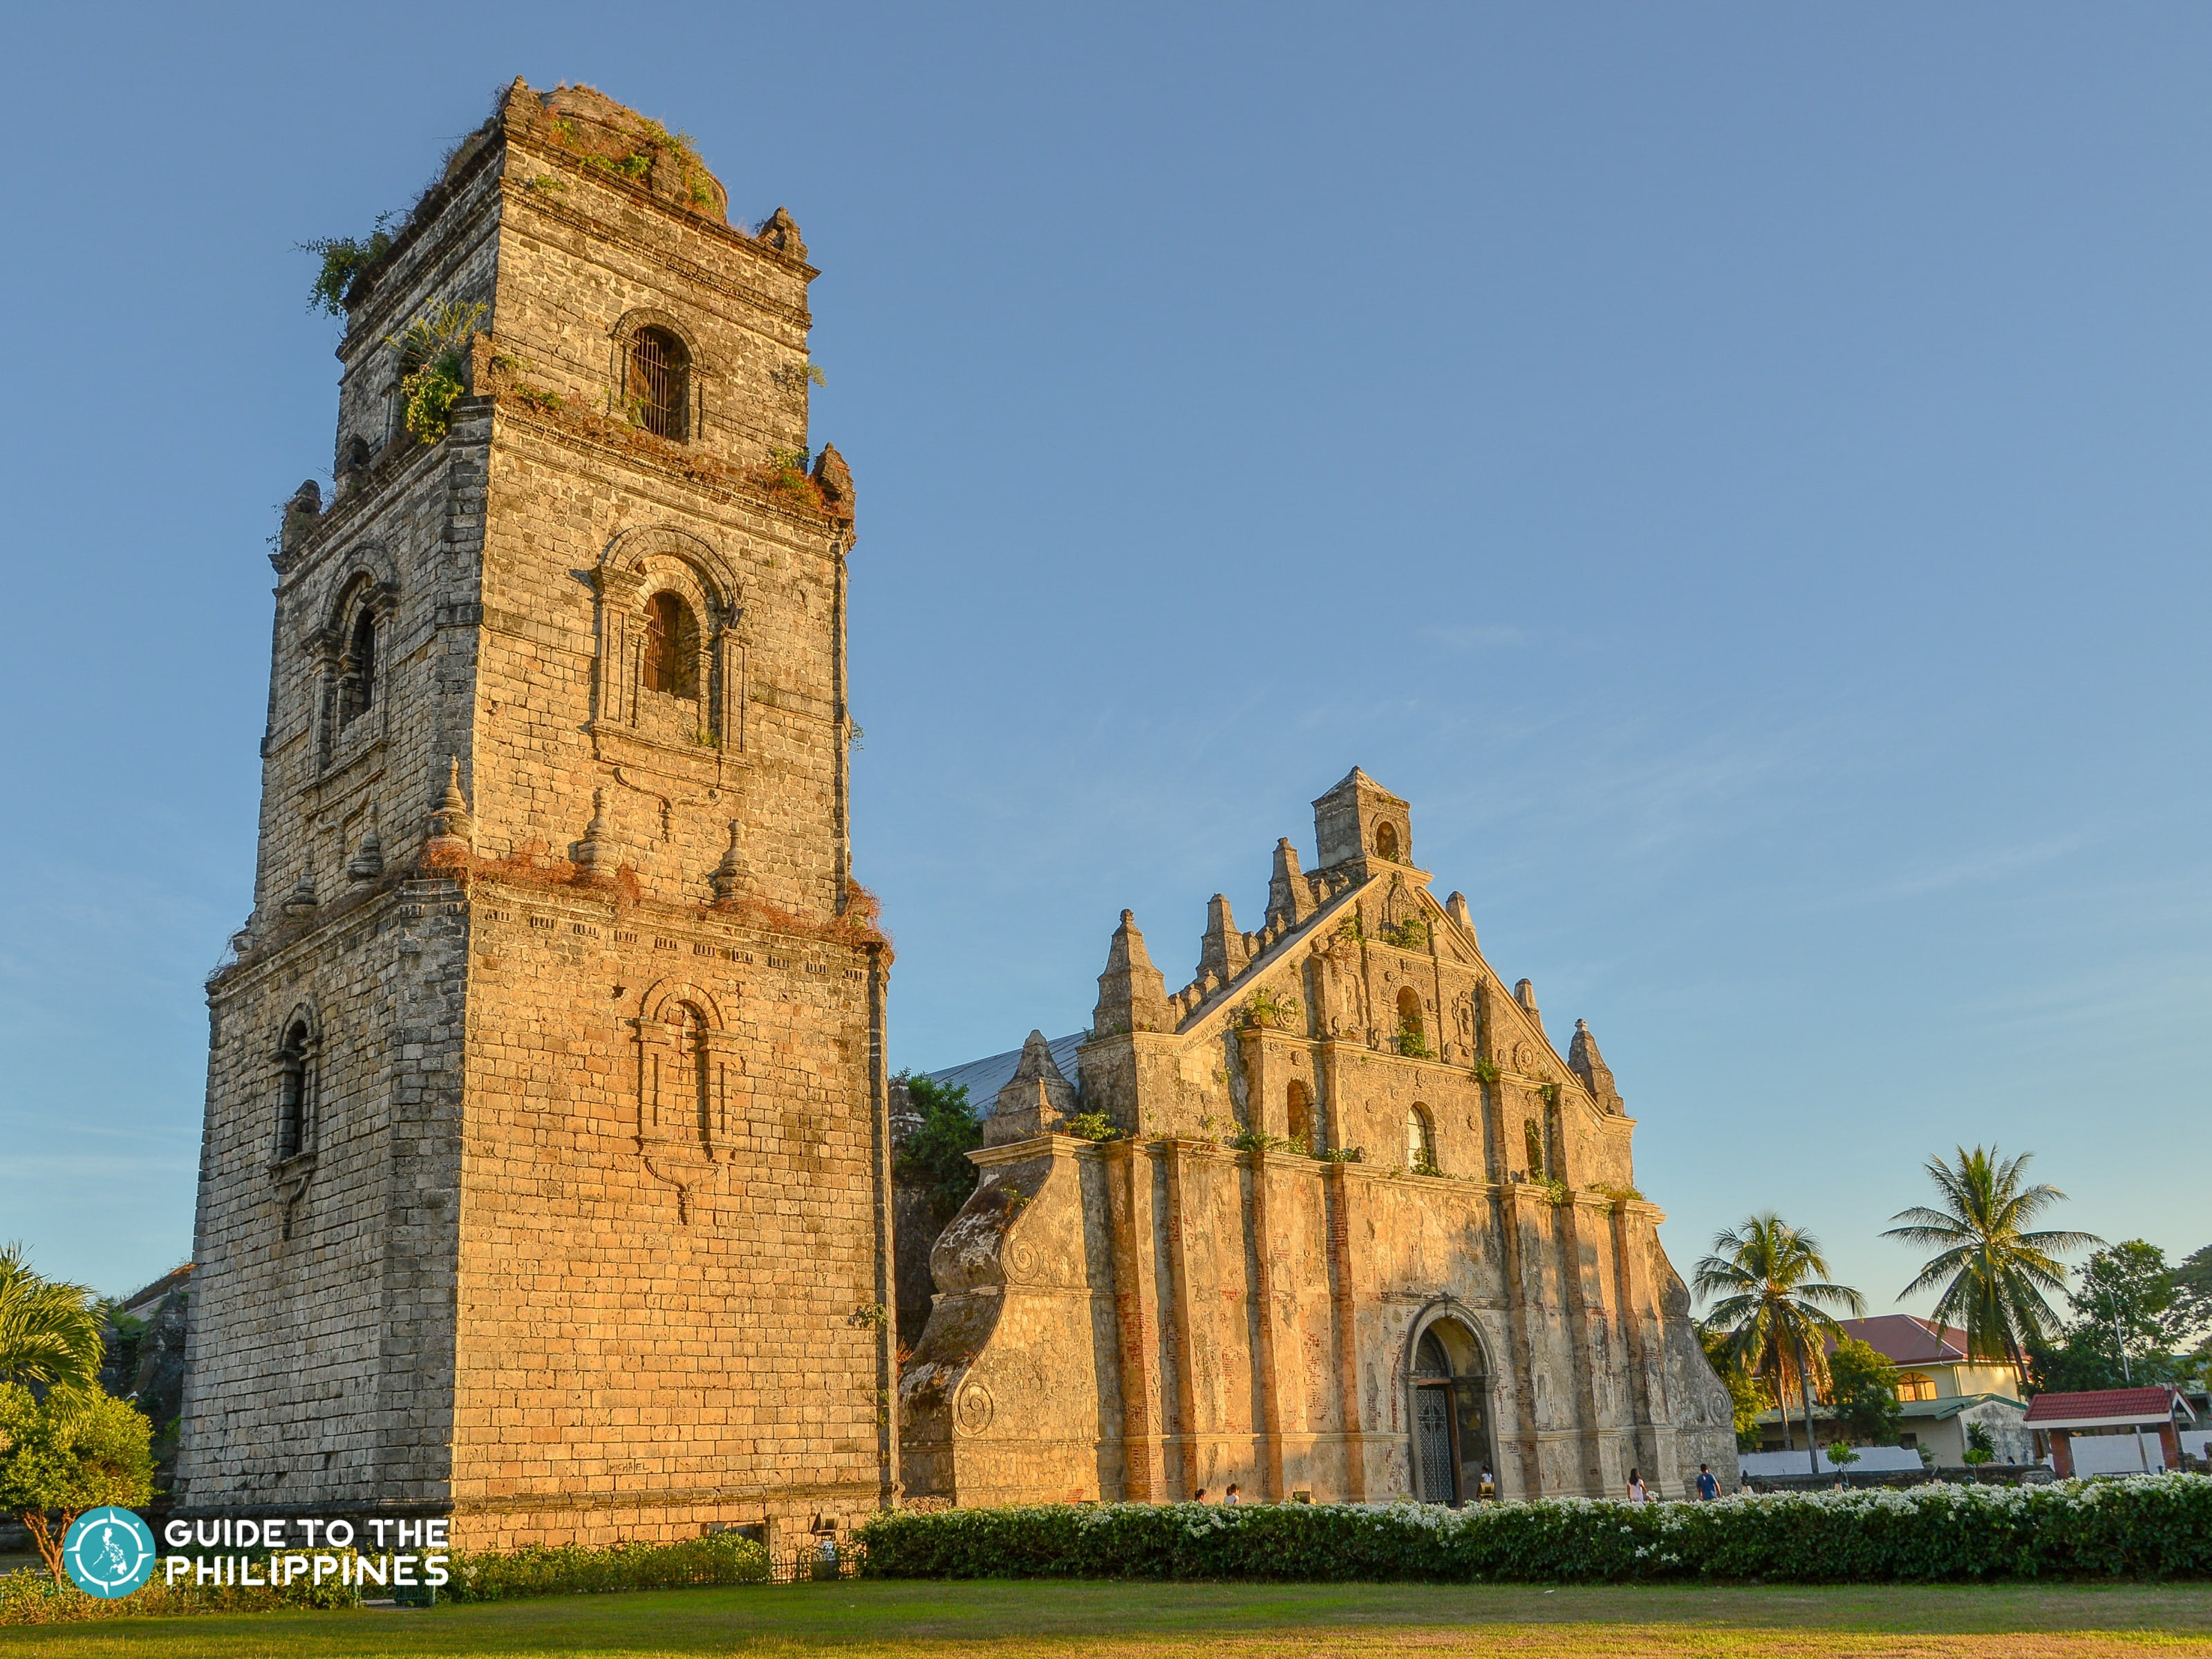 Sunset in Paoay Church in Laoag